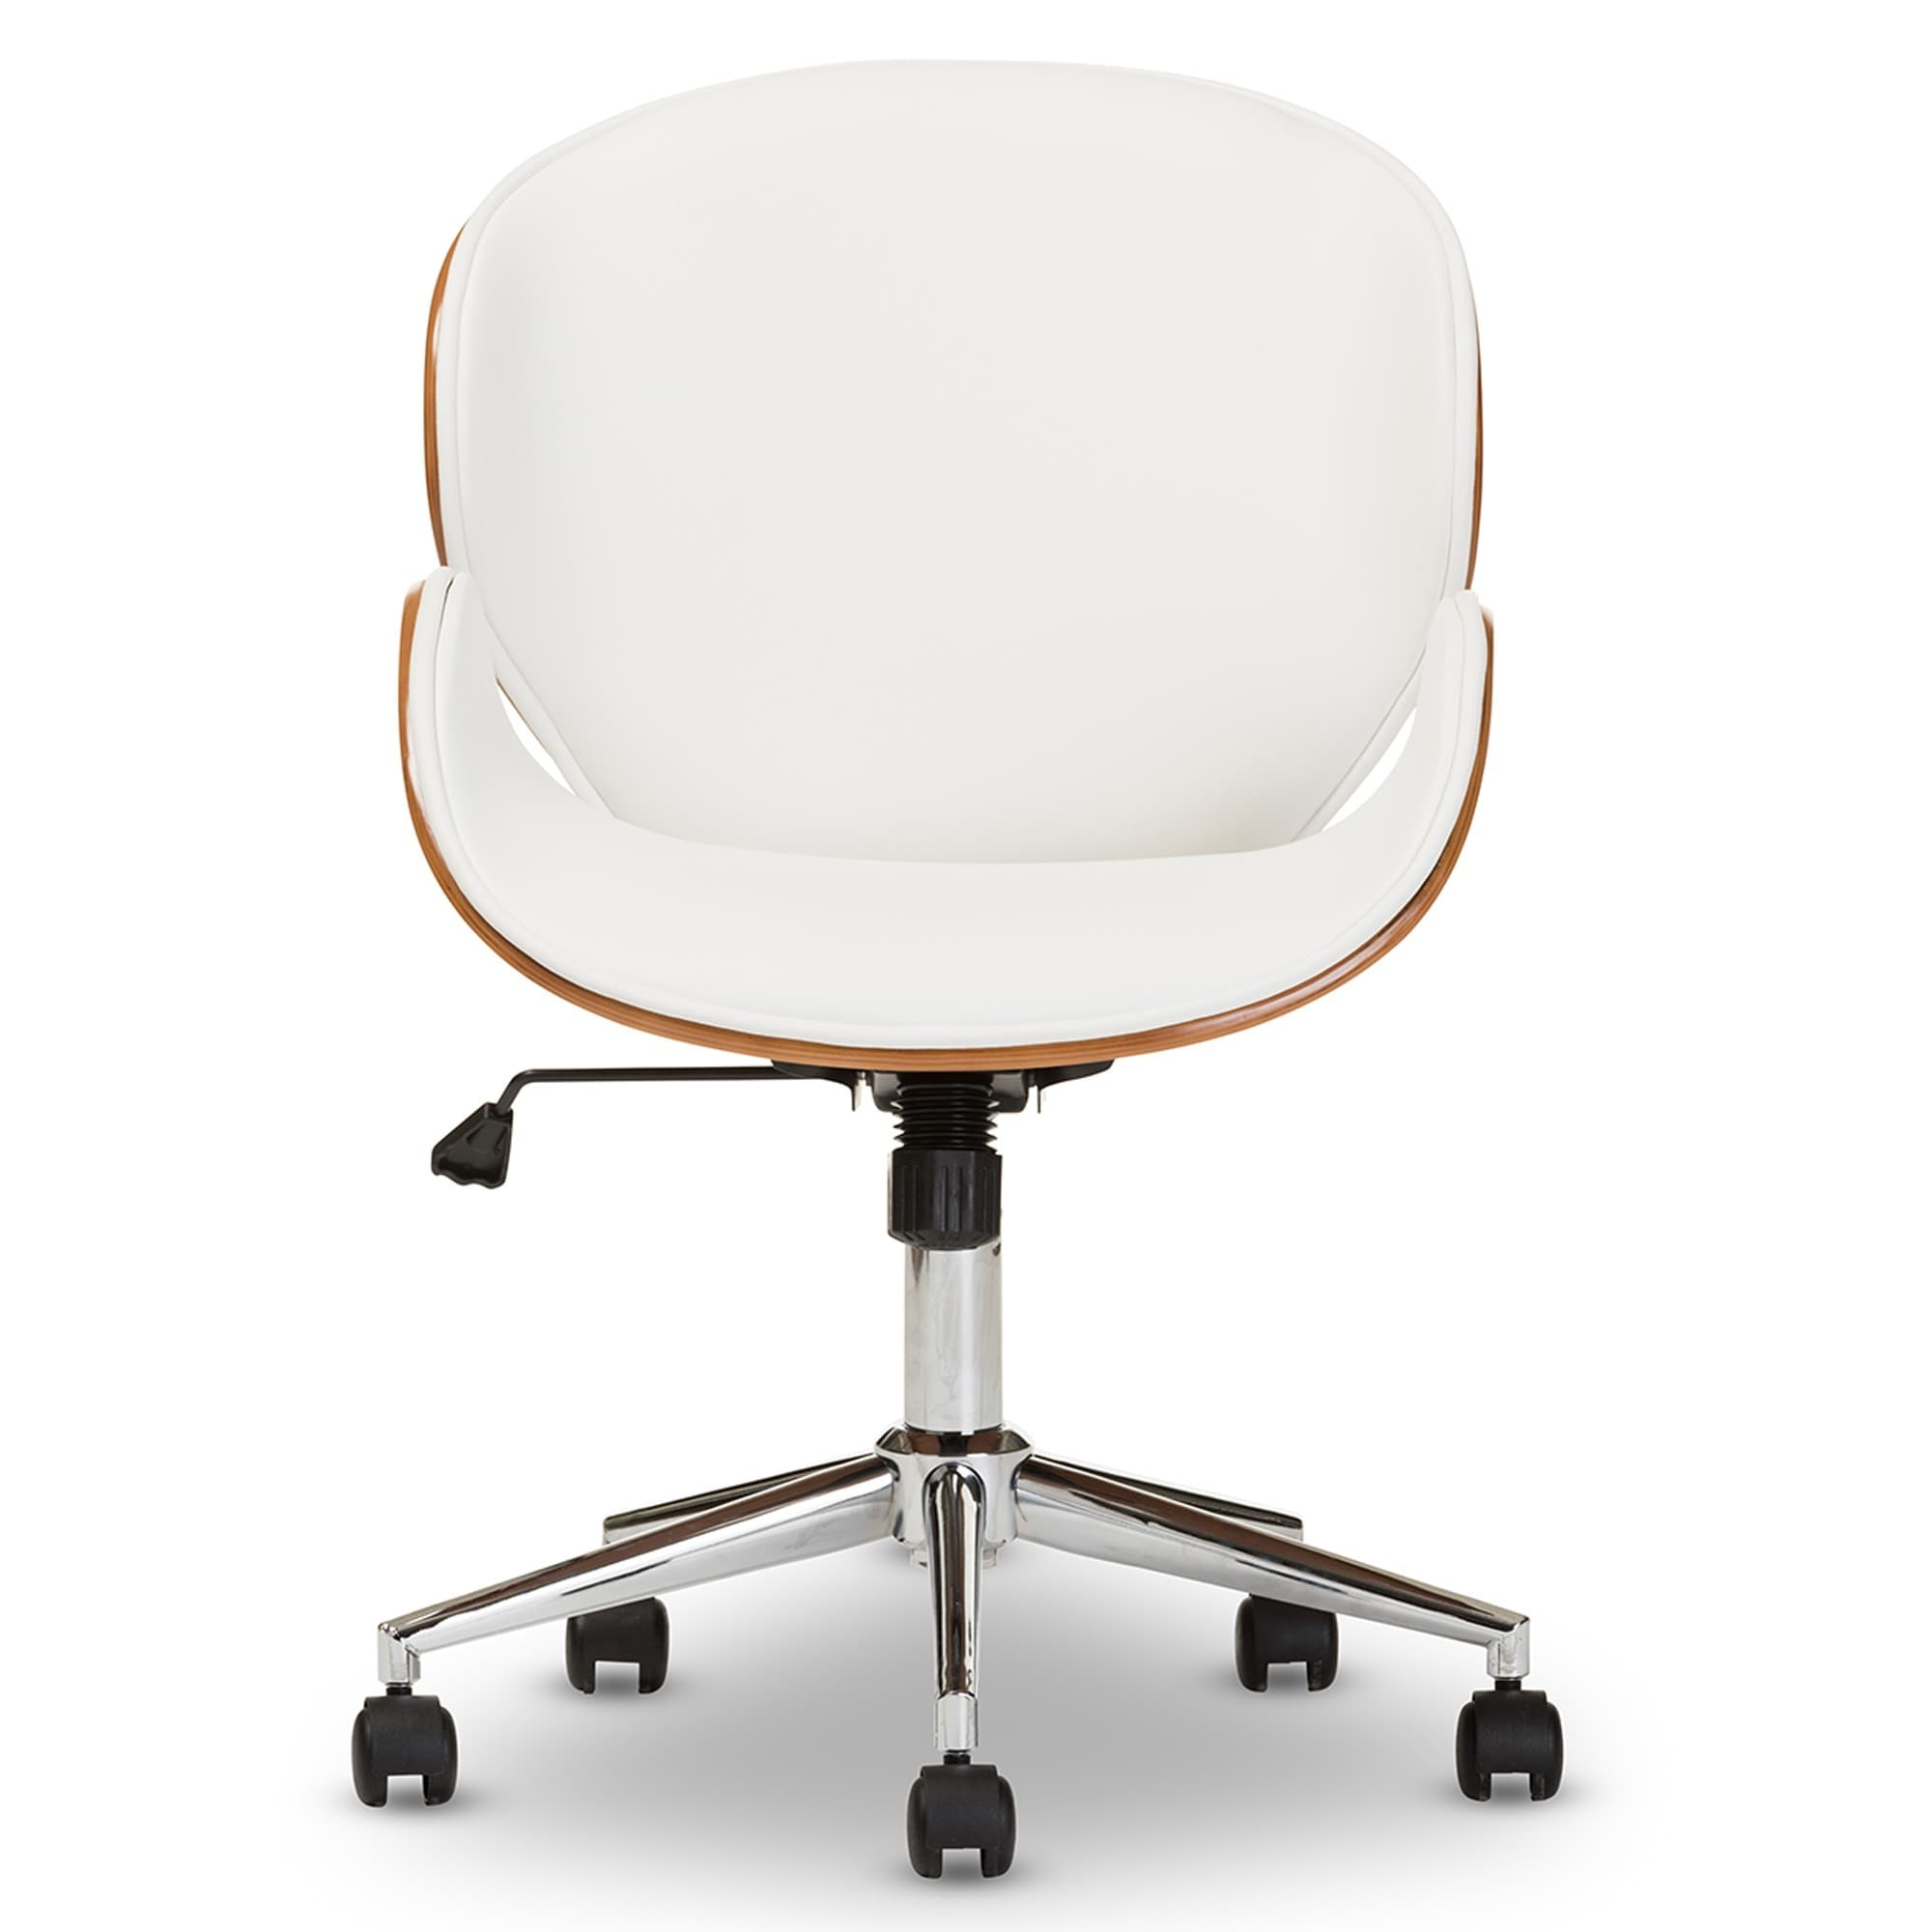 desk cheap chairs comfortable office best most chair magic white modern creativity furniture small